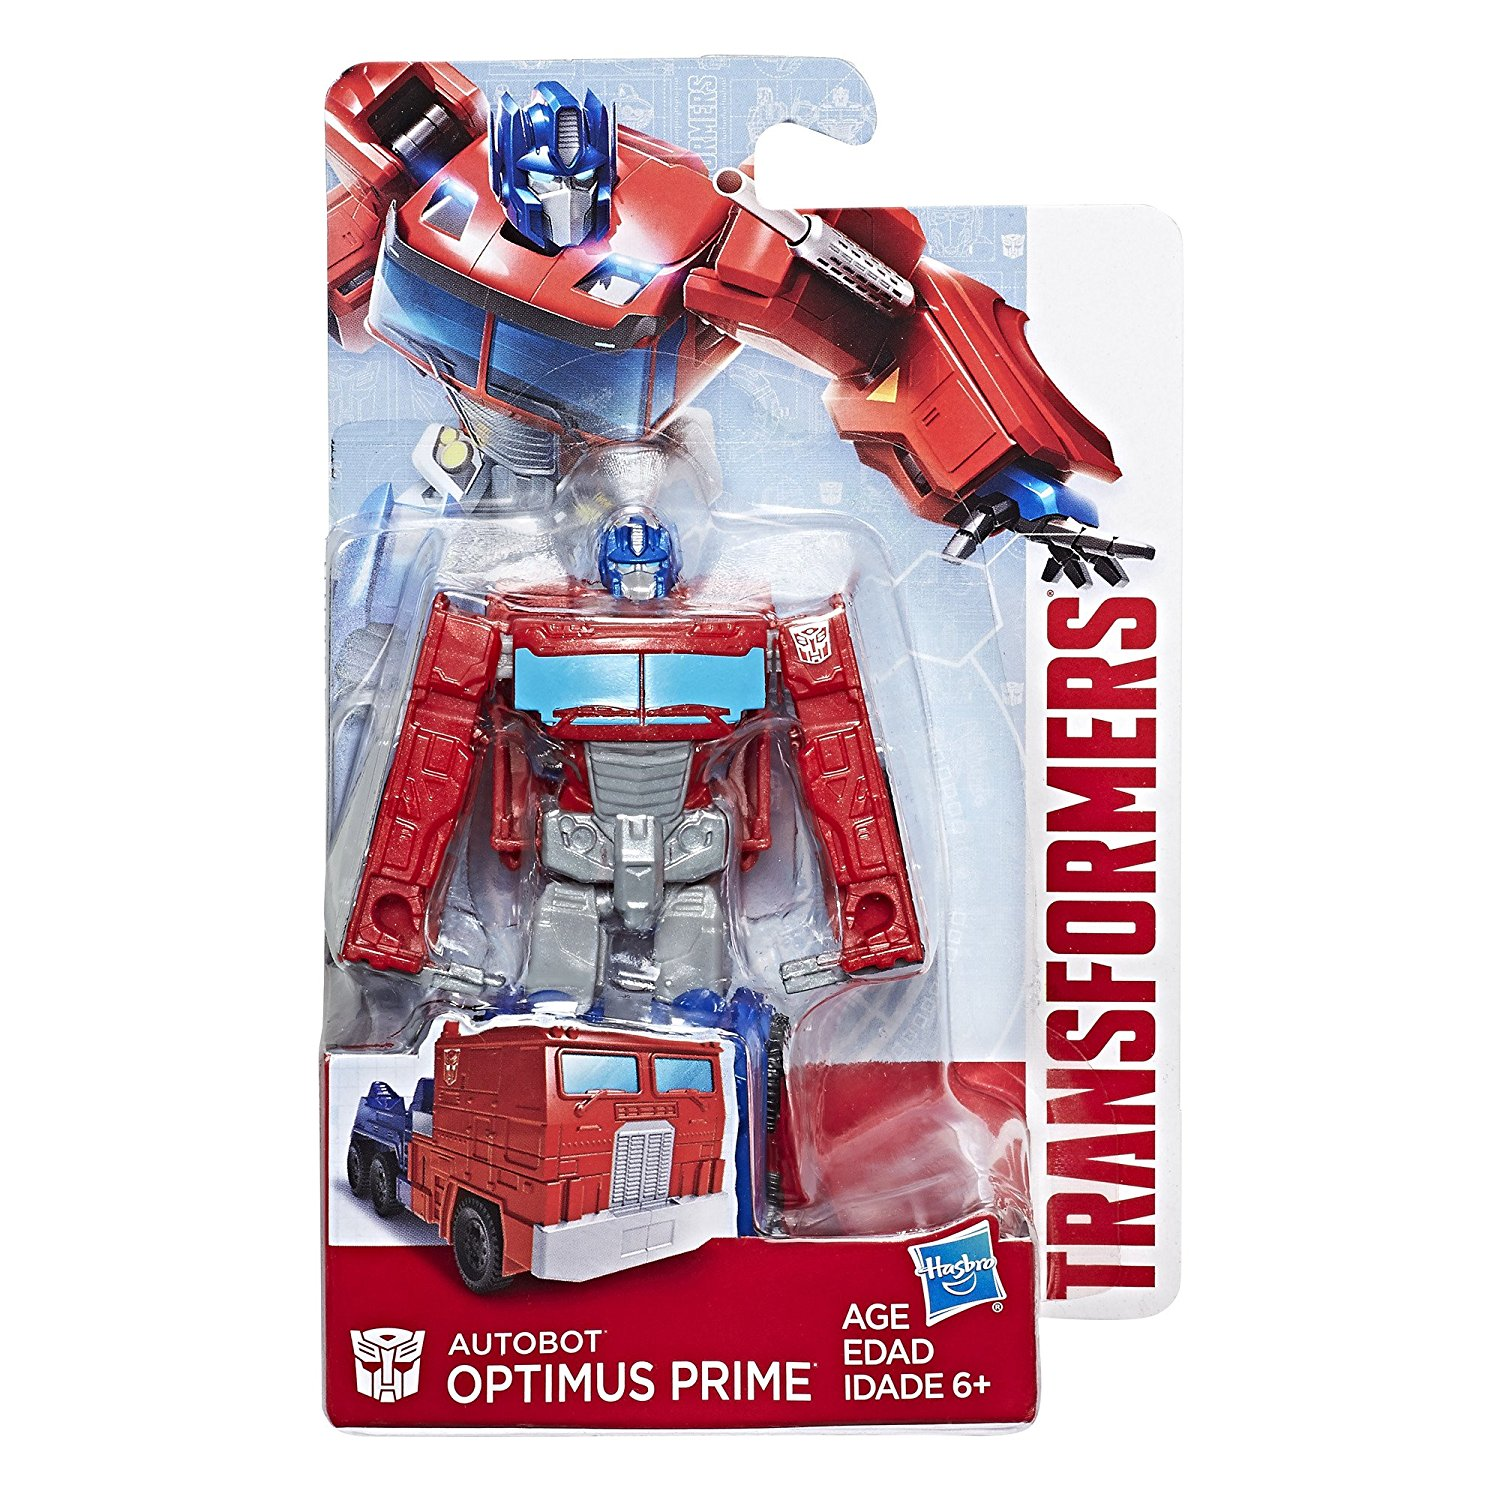 Transformers Authentics Listed On Amazon With Hi Res